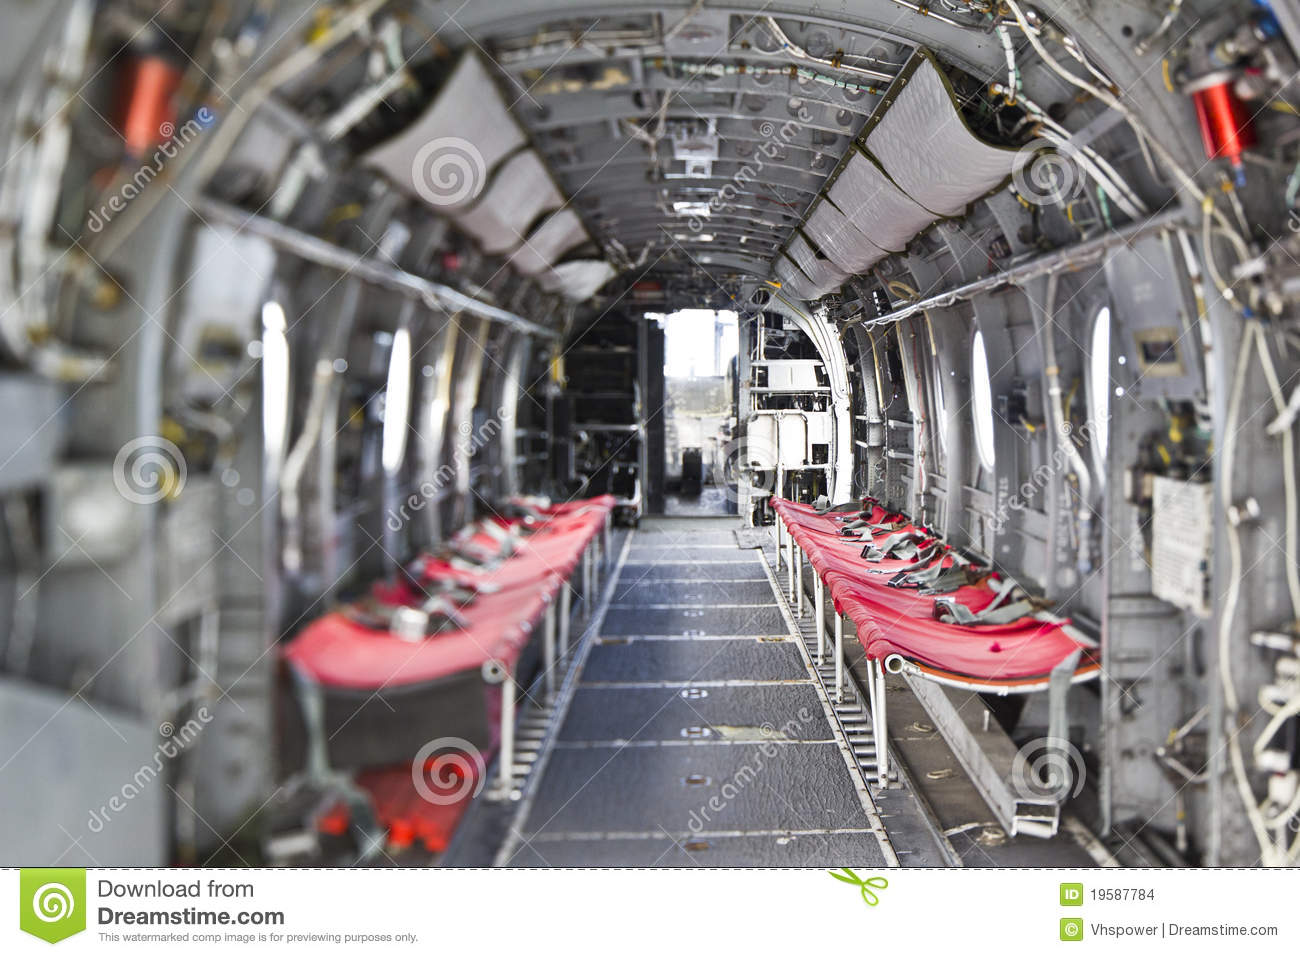 H-46 Sea Knight Helicopter interior